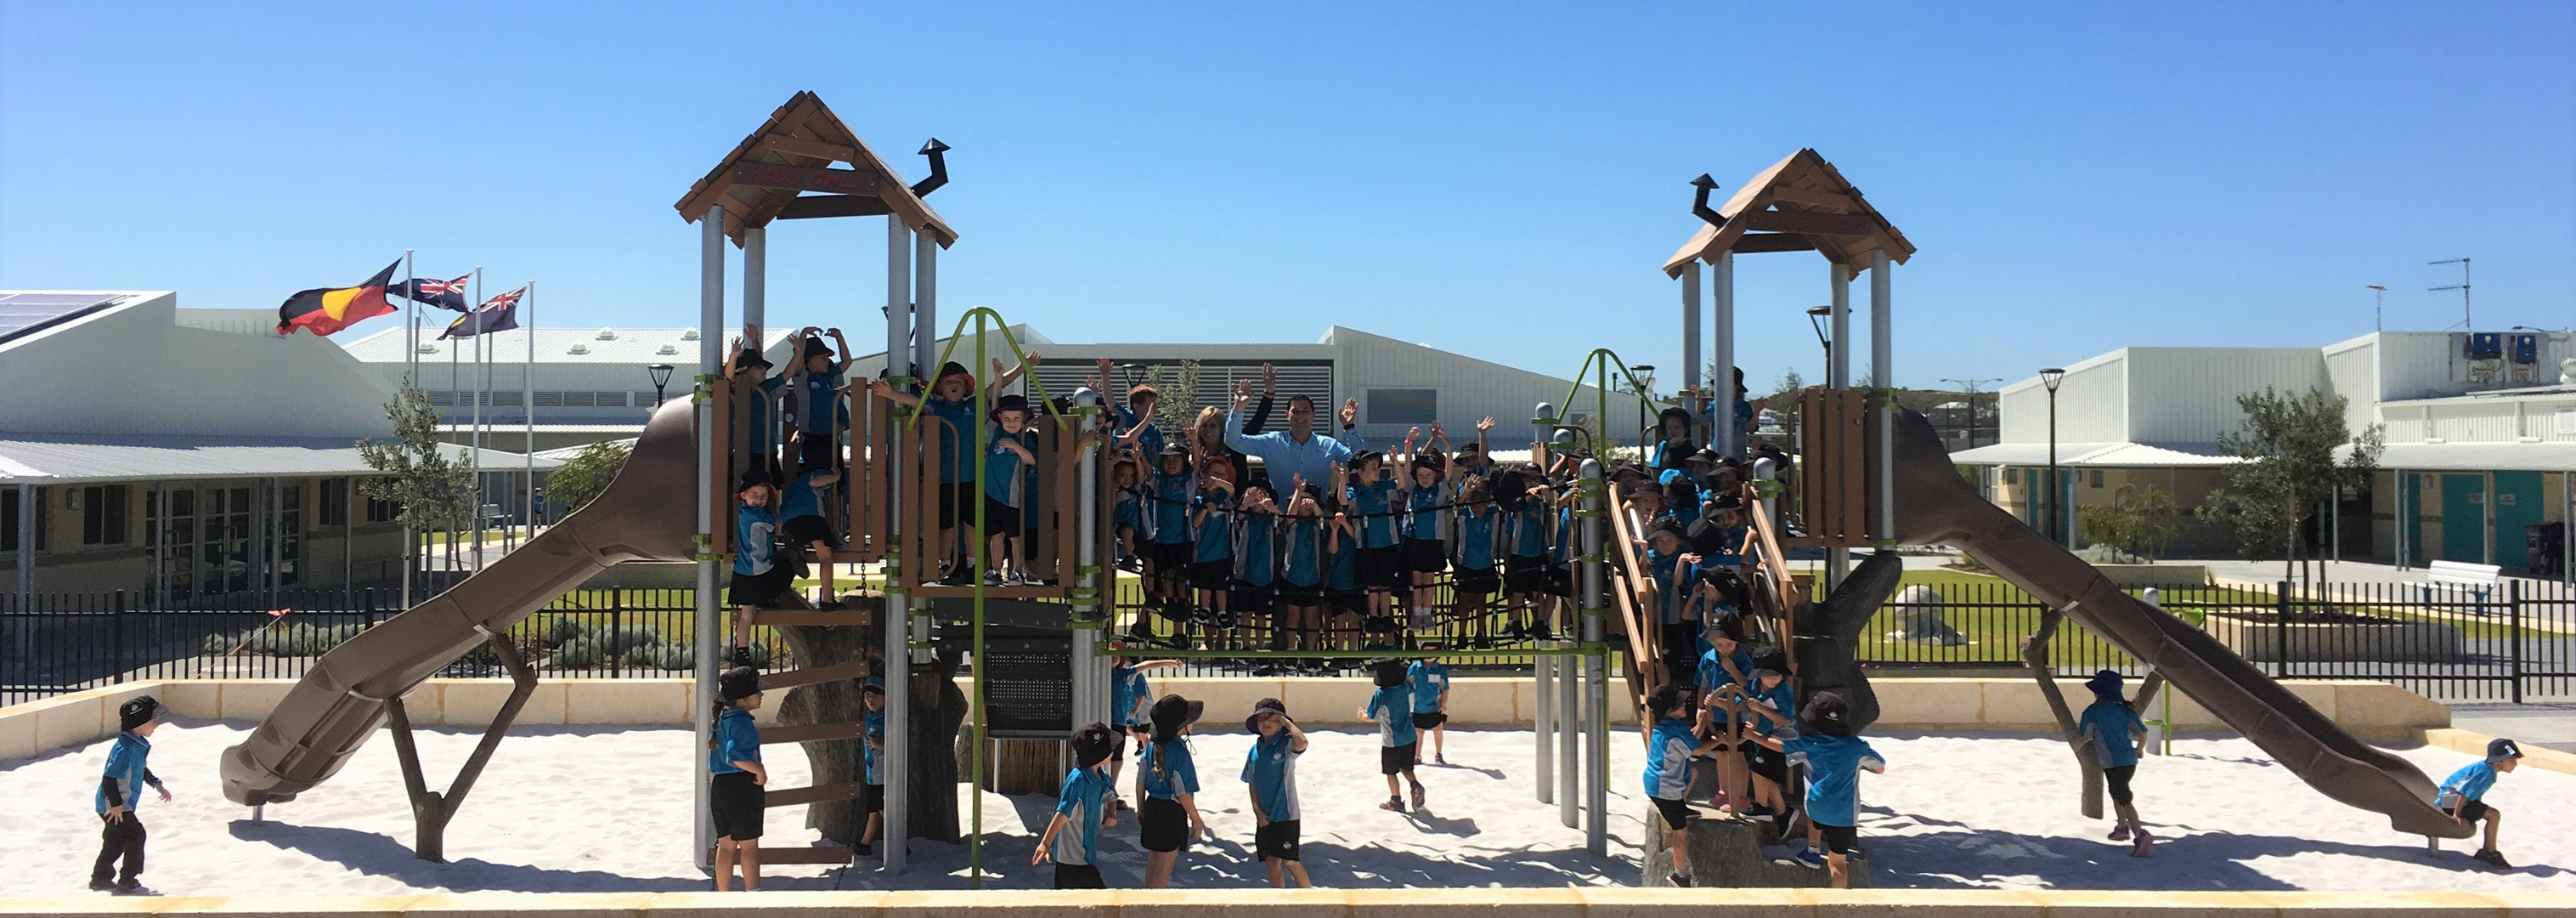 Nature Inspired Playgrounds. Treehouse. Western Australia Playground Supplier. Perth School